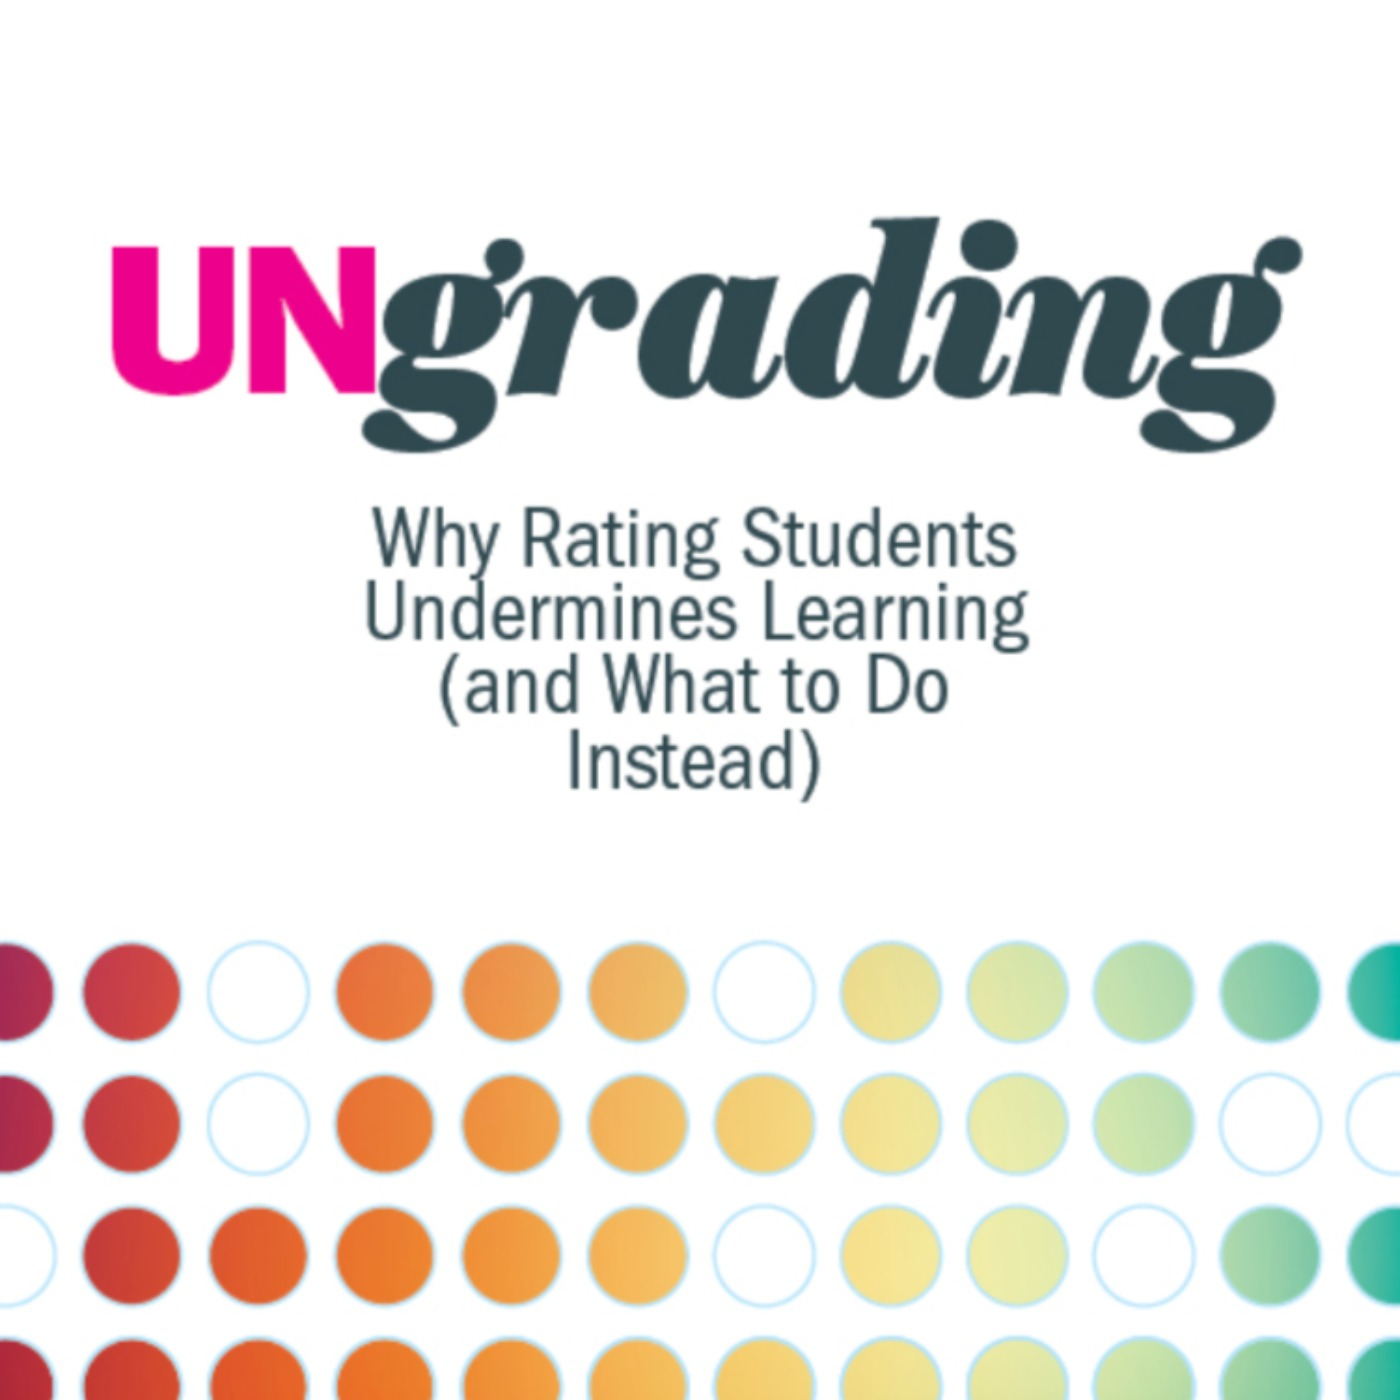 83: Why Rating Students Undermines Learning w/ Dr. Susan Blum